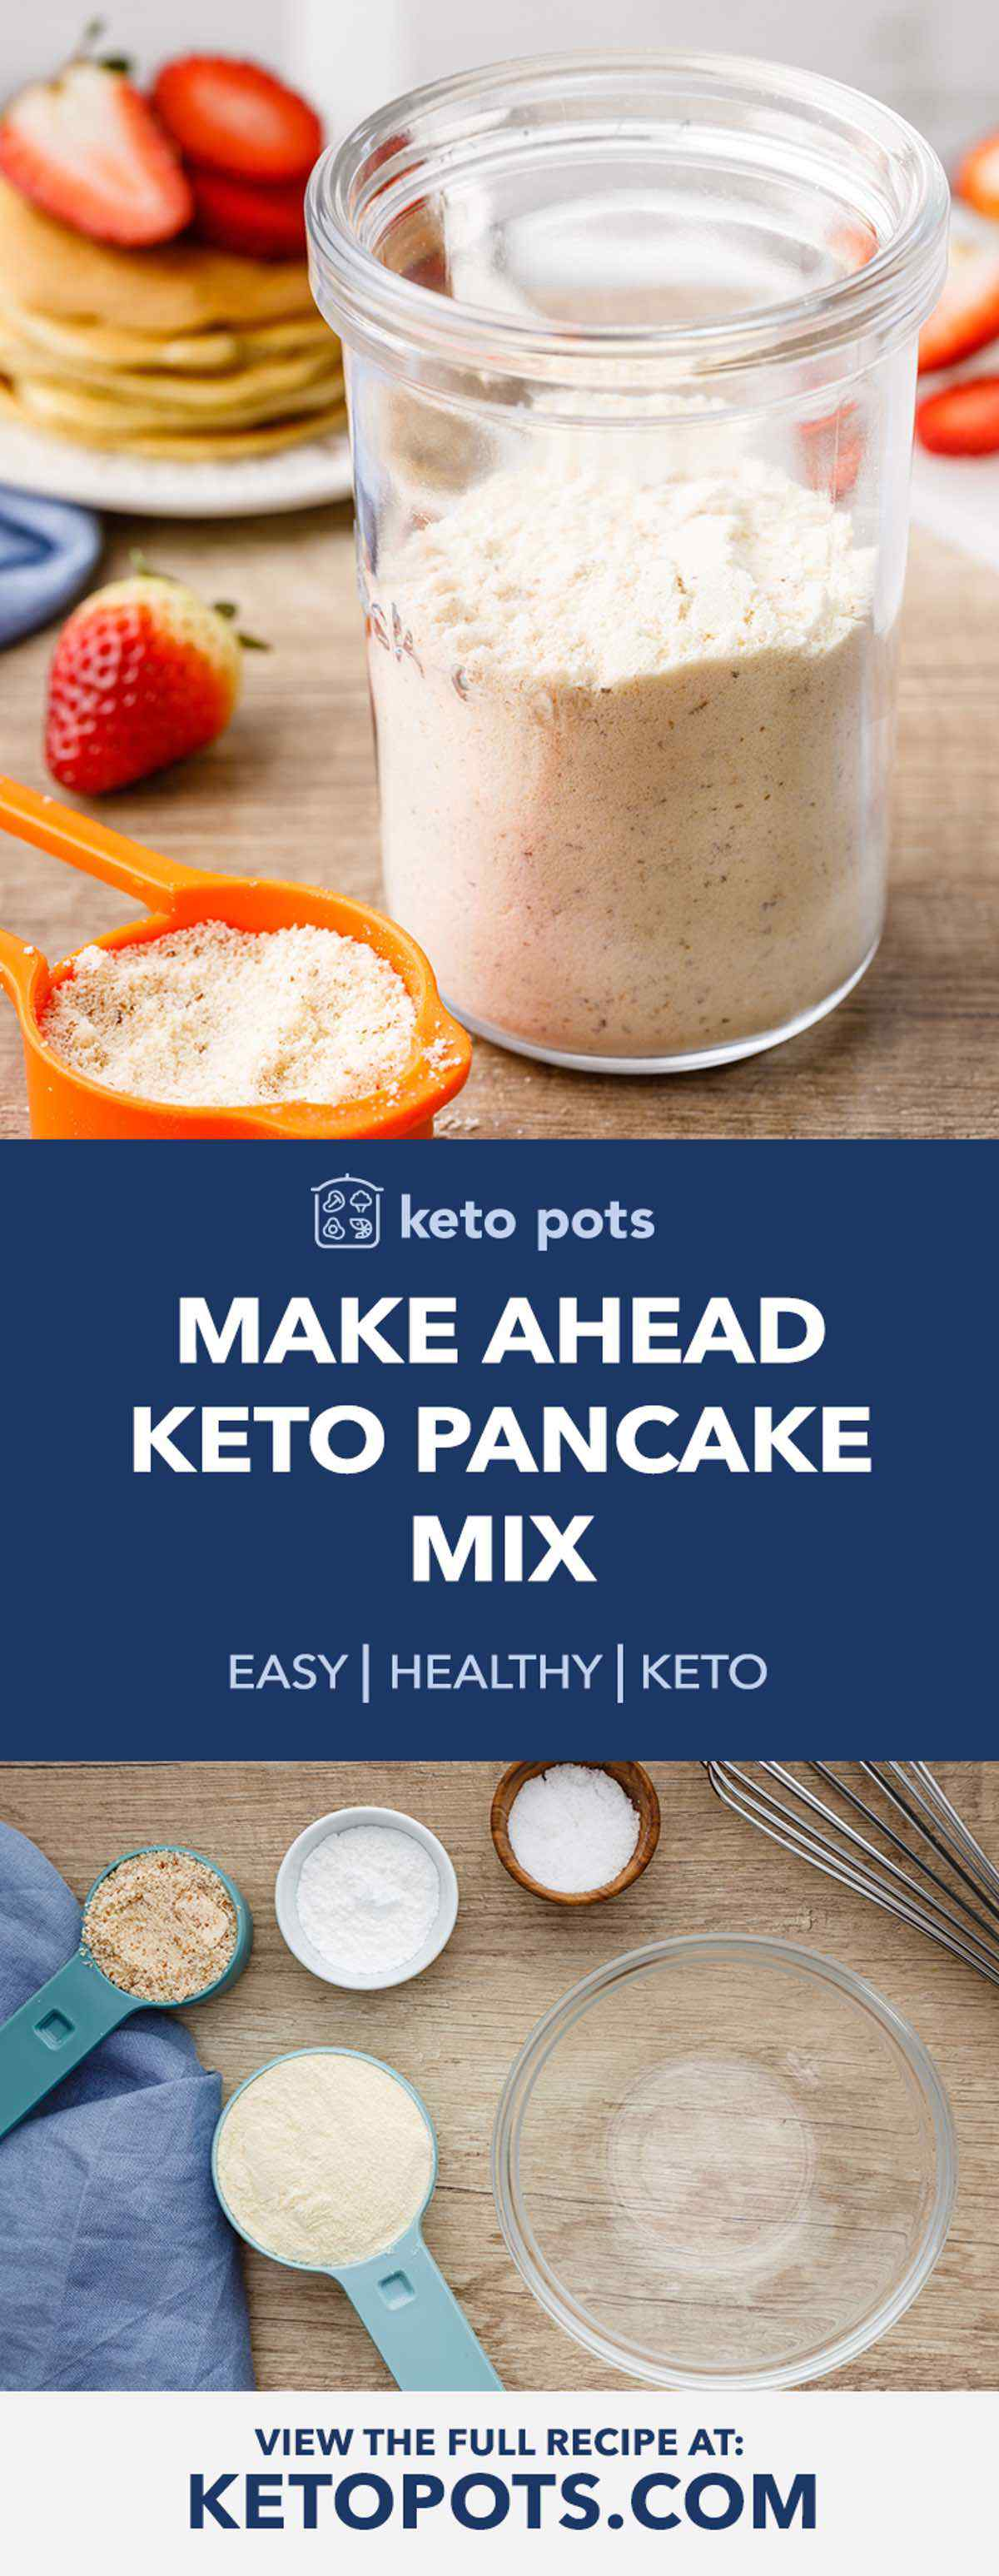 Make Ahead Keto Pancake Mix